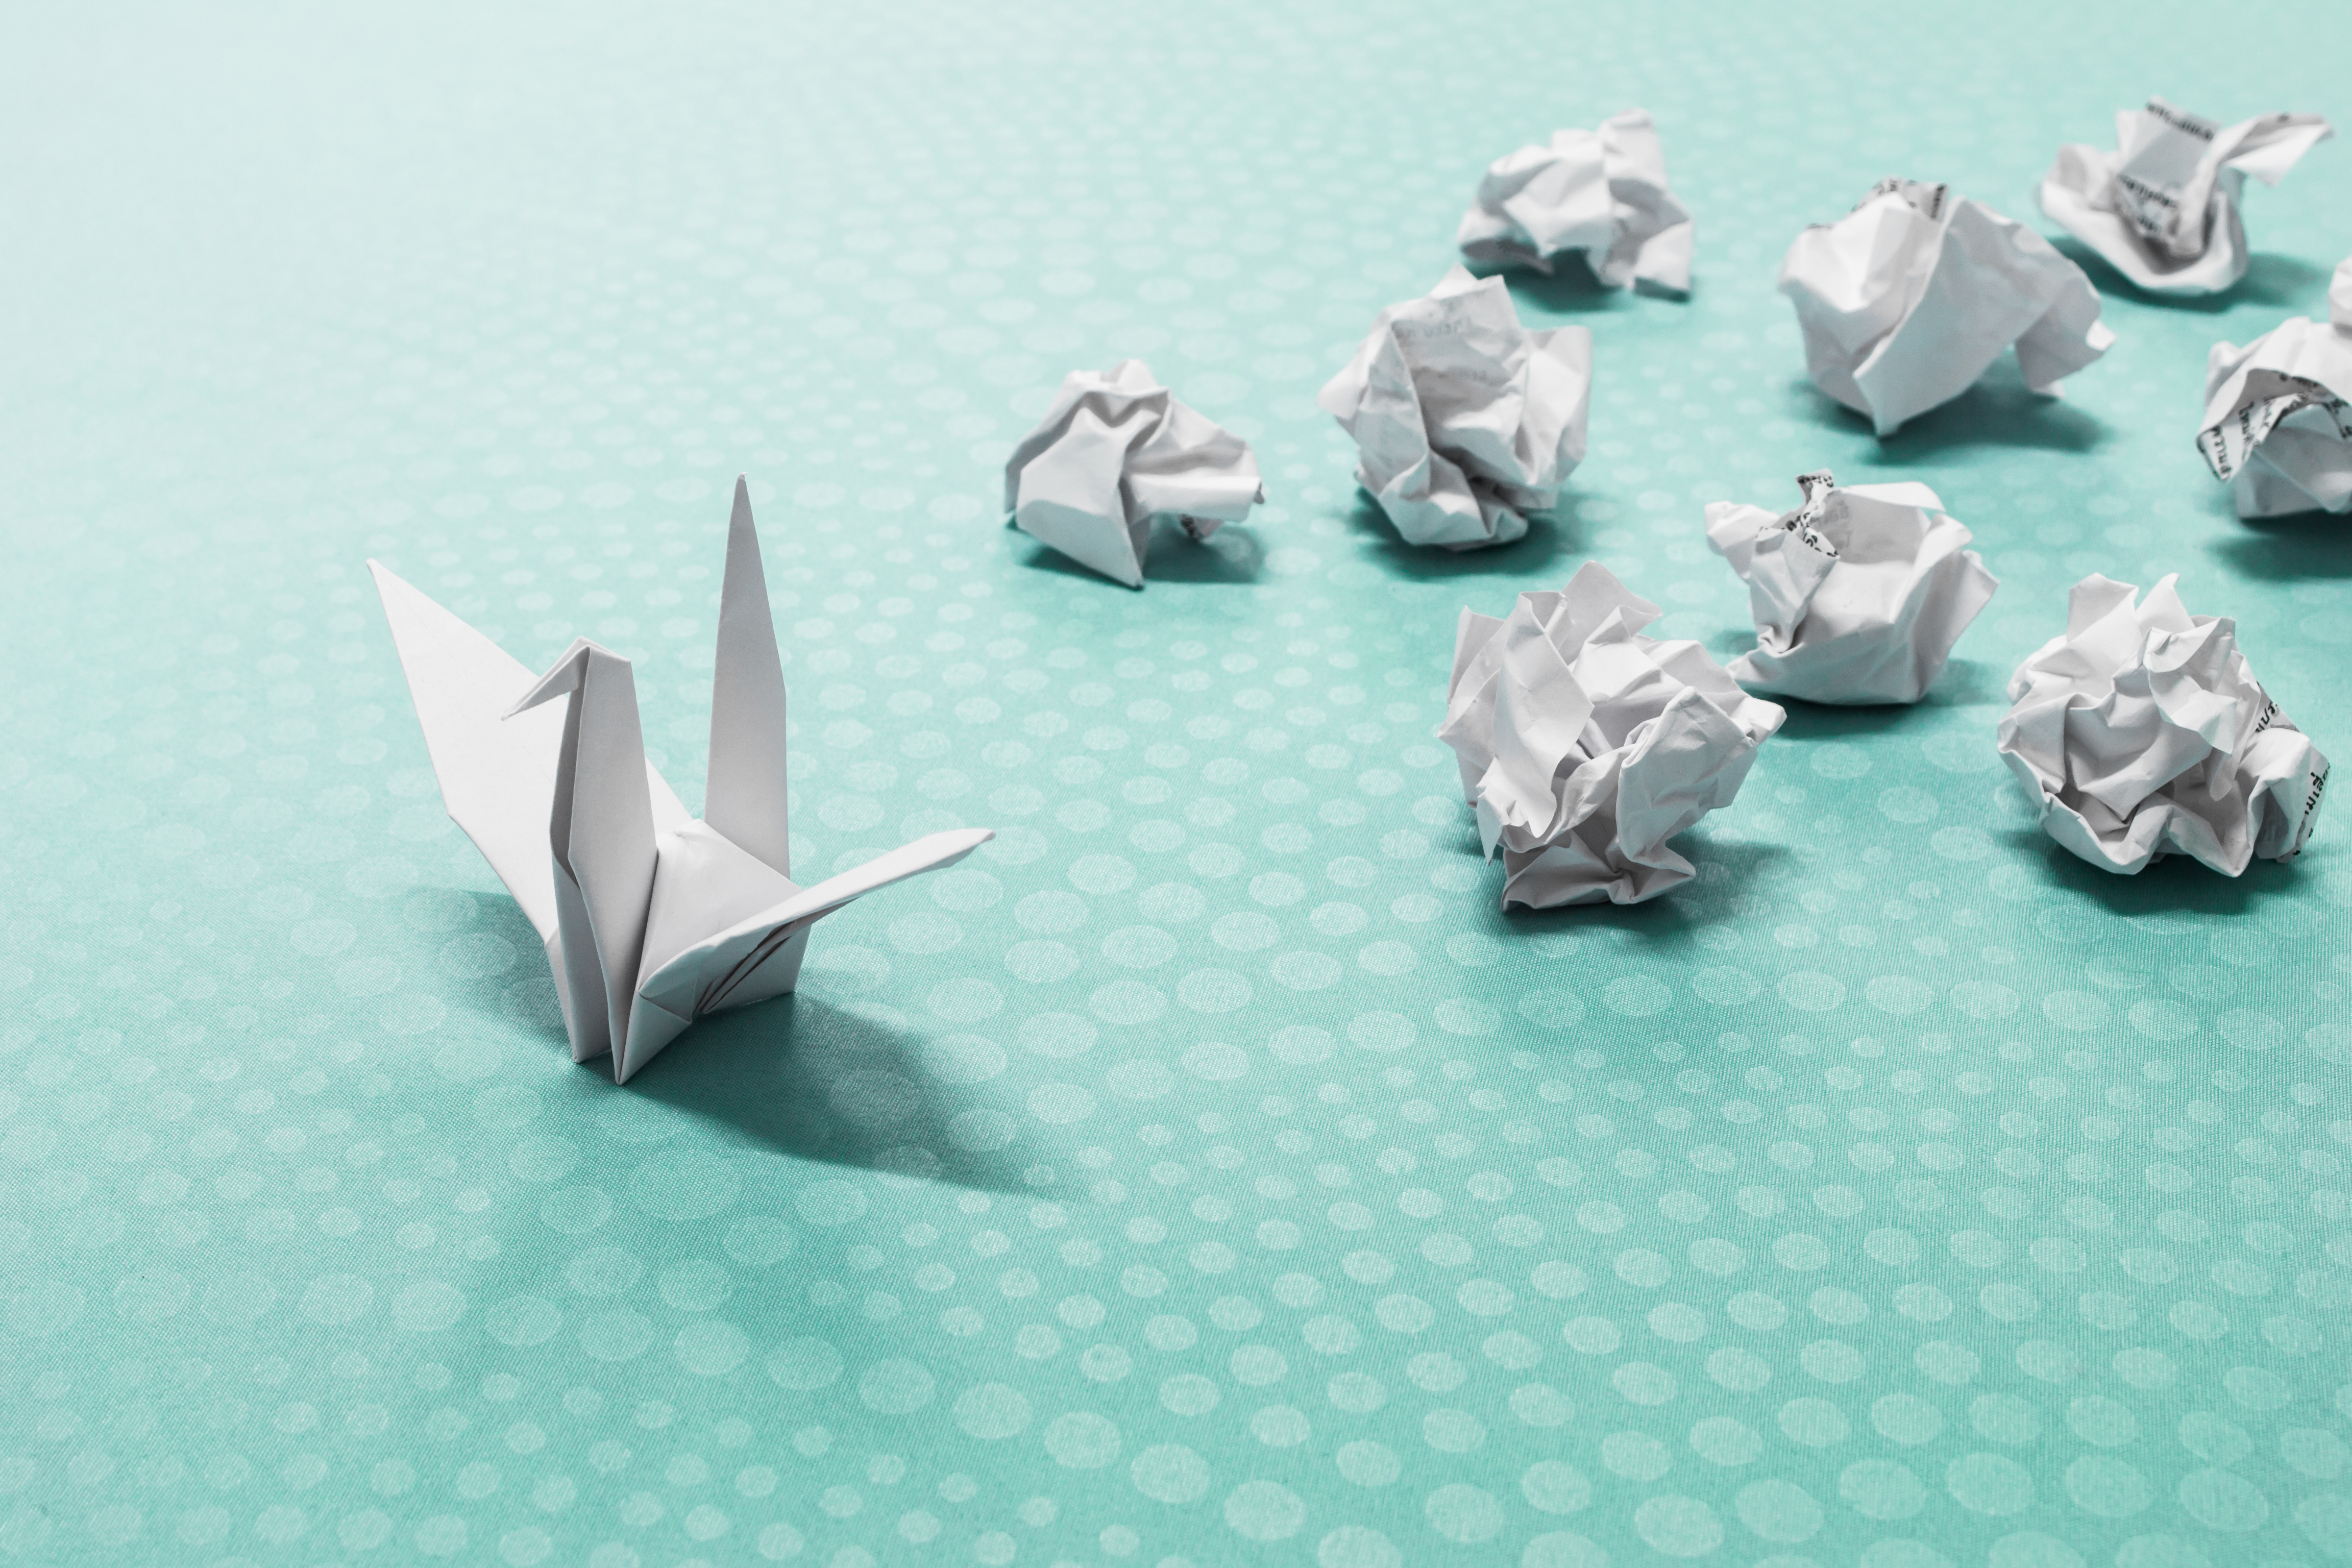 Image of an origami crane and several crumpled pieces of paper to represent success from failure.